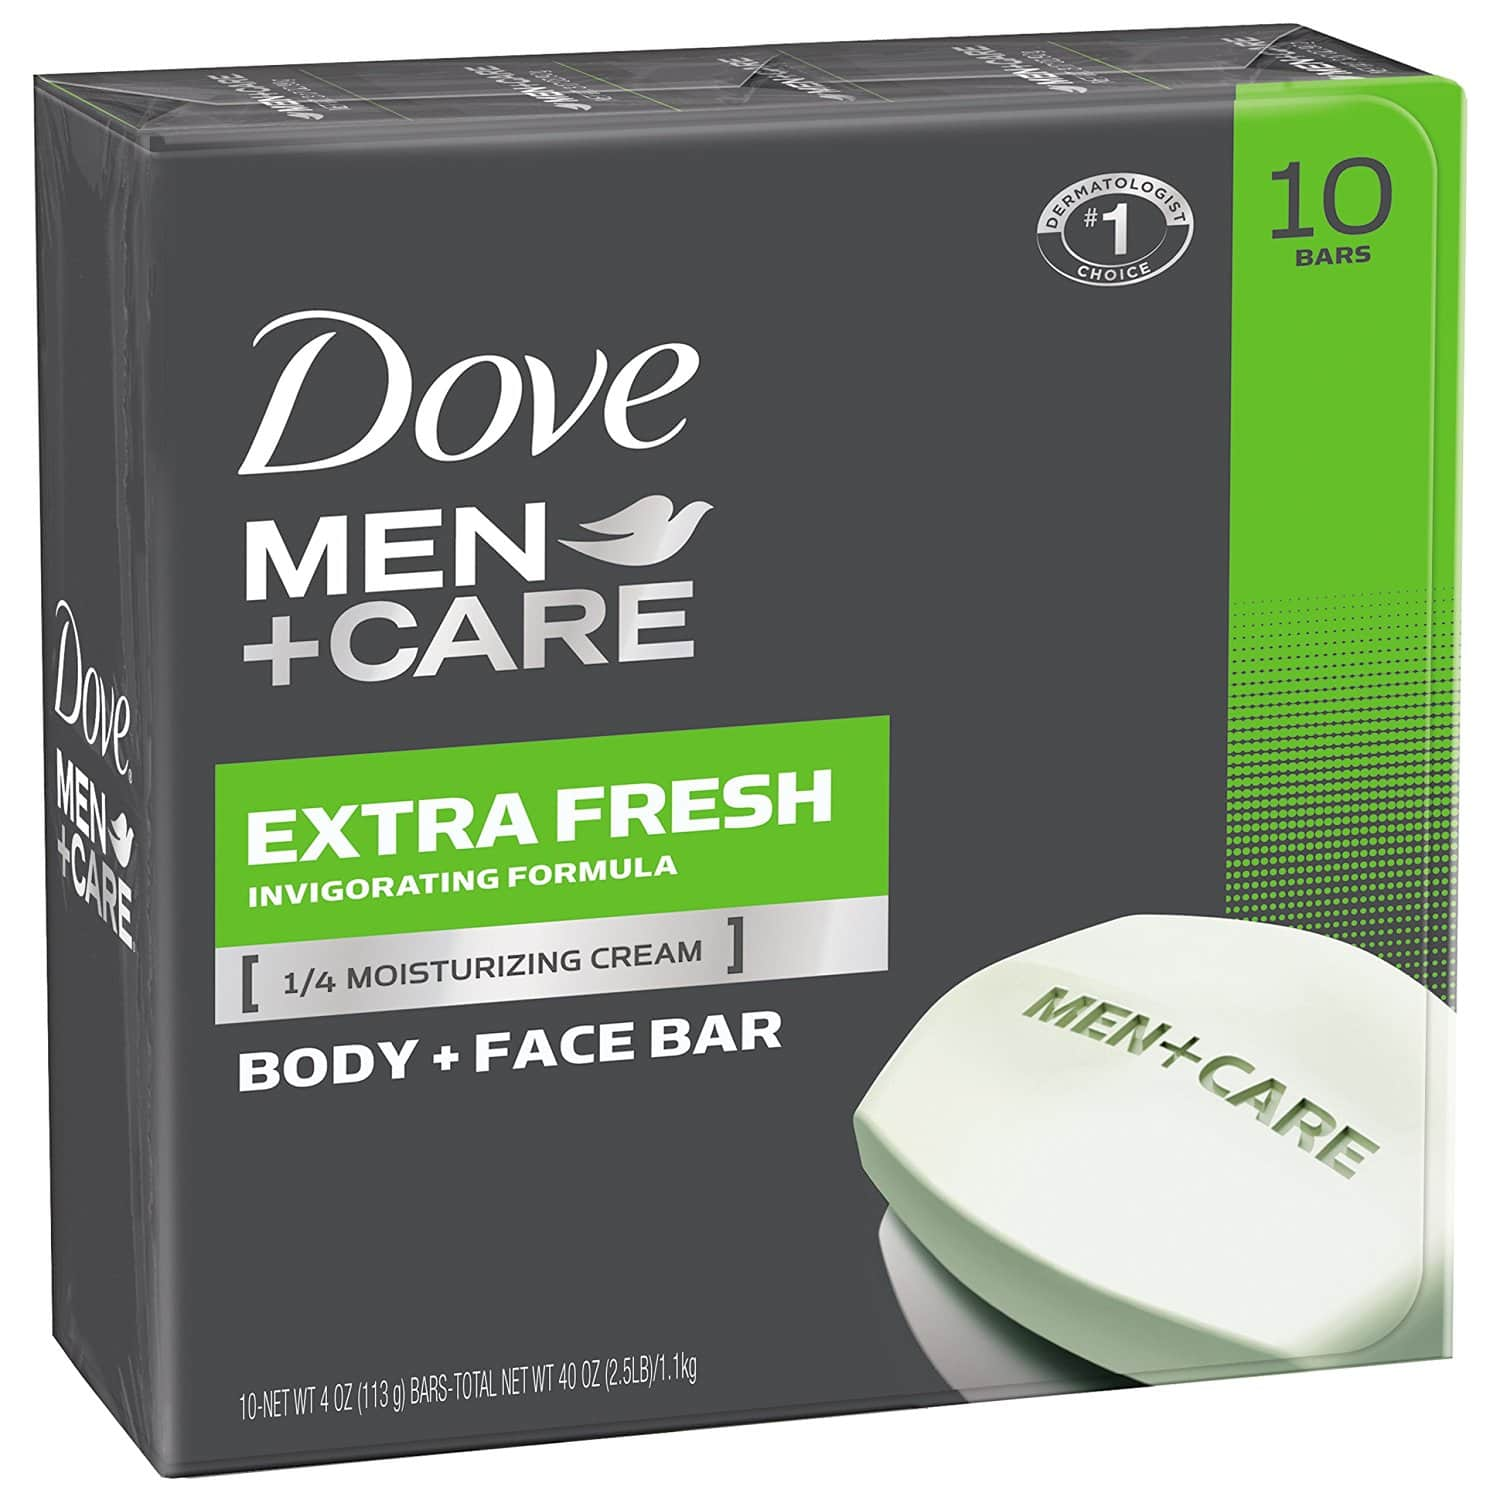 Amazon has 10 Bars of Dove Men+Care Body and Face Bar, Extra Fresh 4 oz for $8.30 w/ 5% ($7.32 w/ 15% S&S)